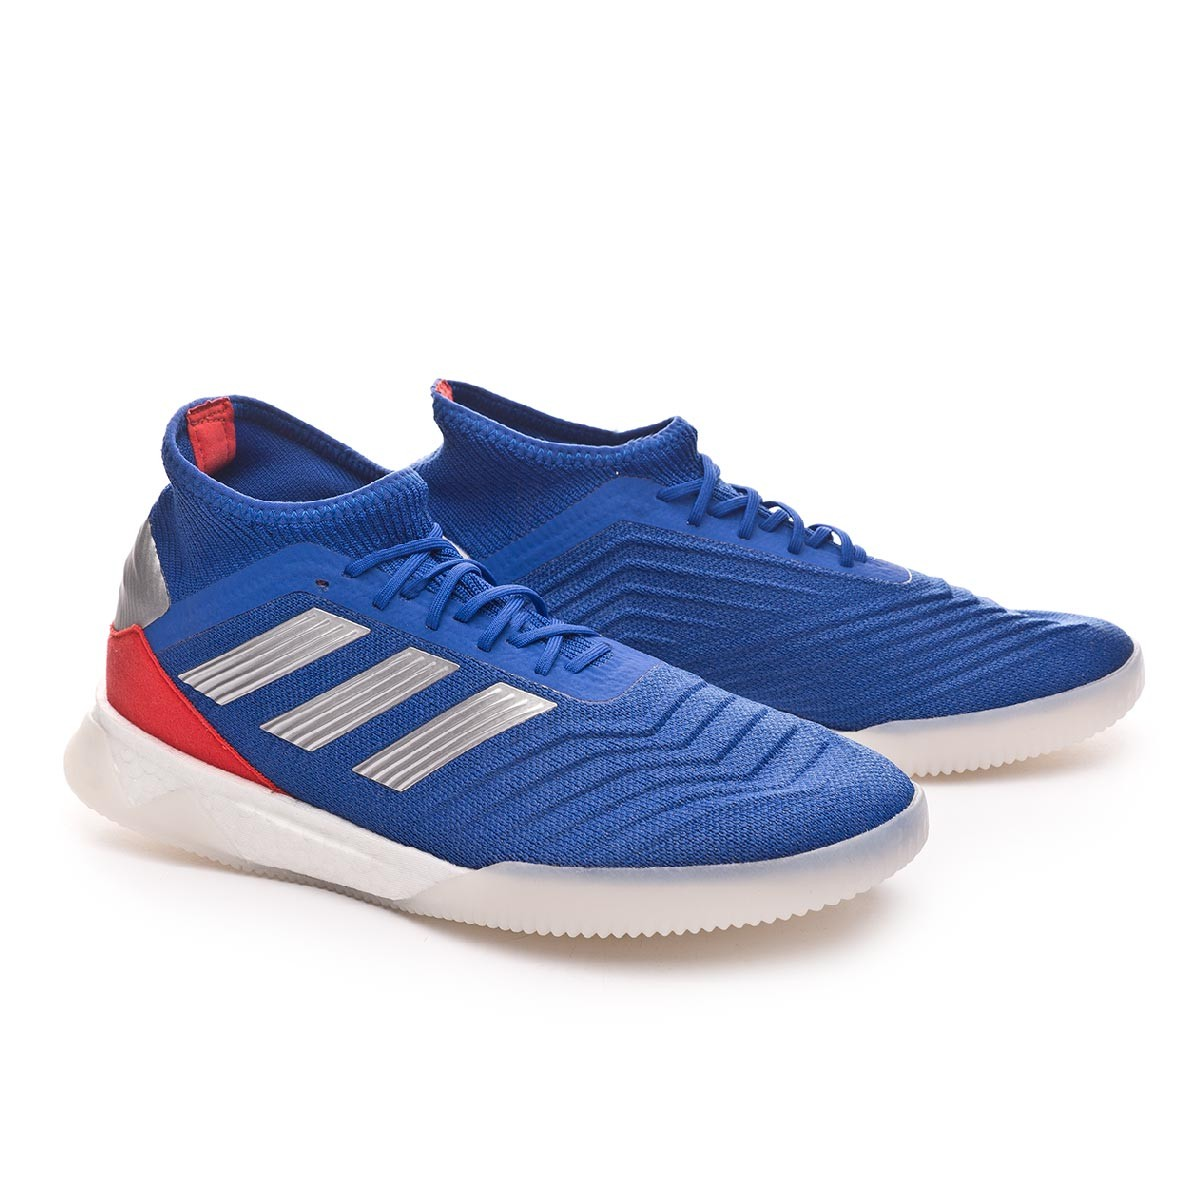 3e50c0ee7b52 Trainers adidas Predator Tango 19.1 TR Bold blue-White-Active red ...